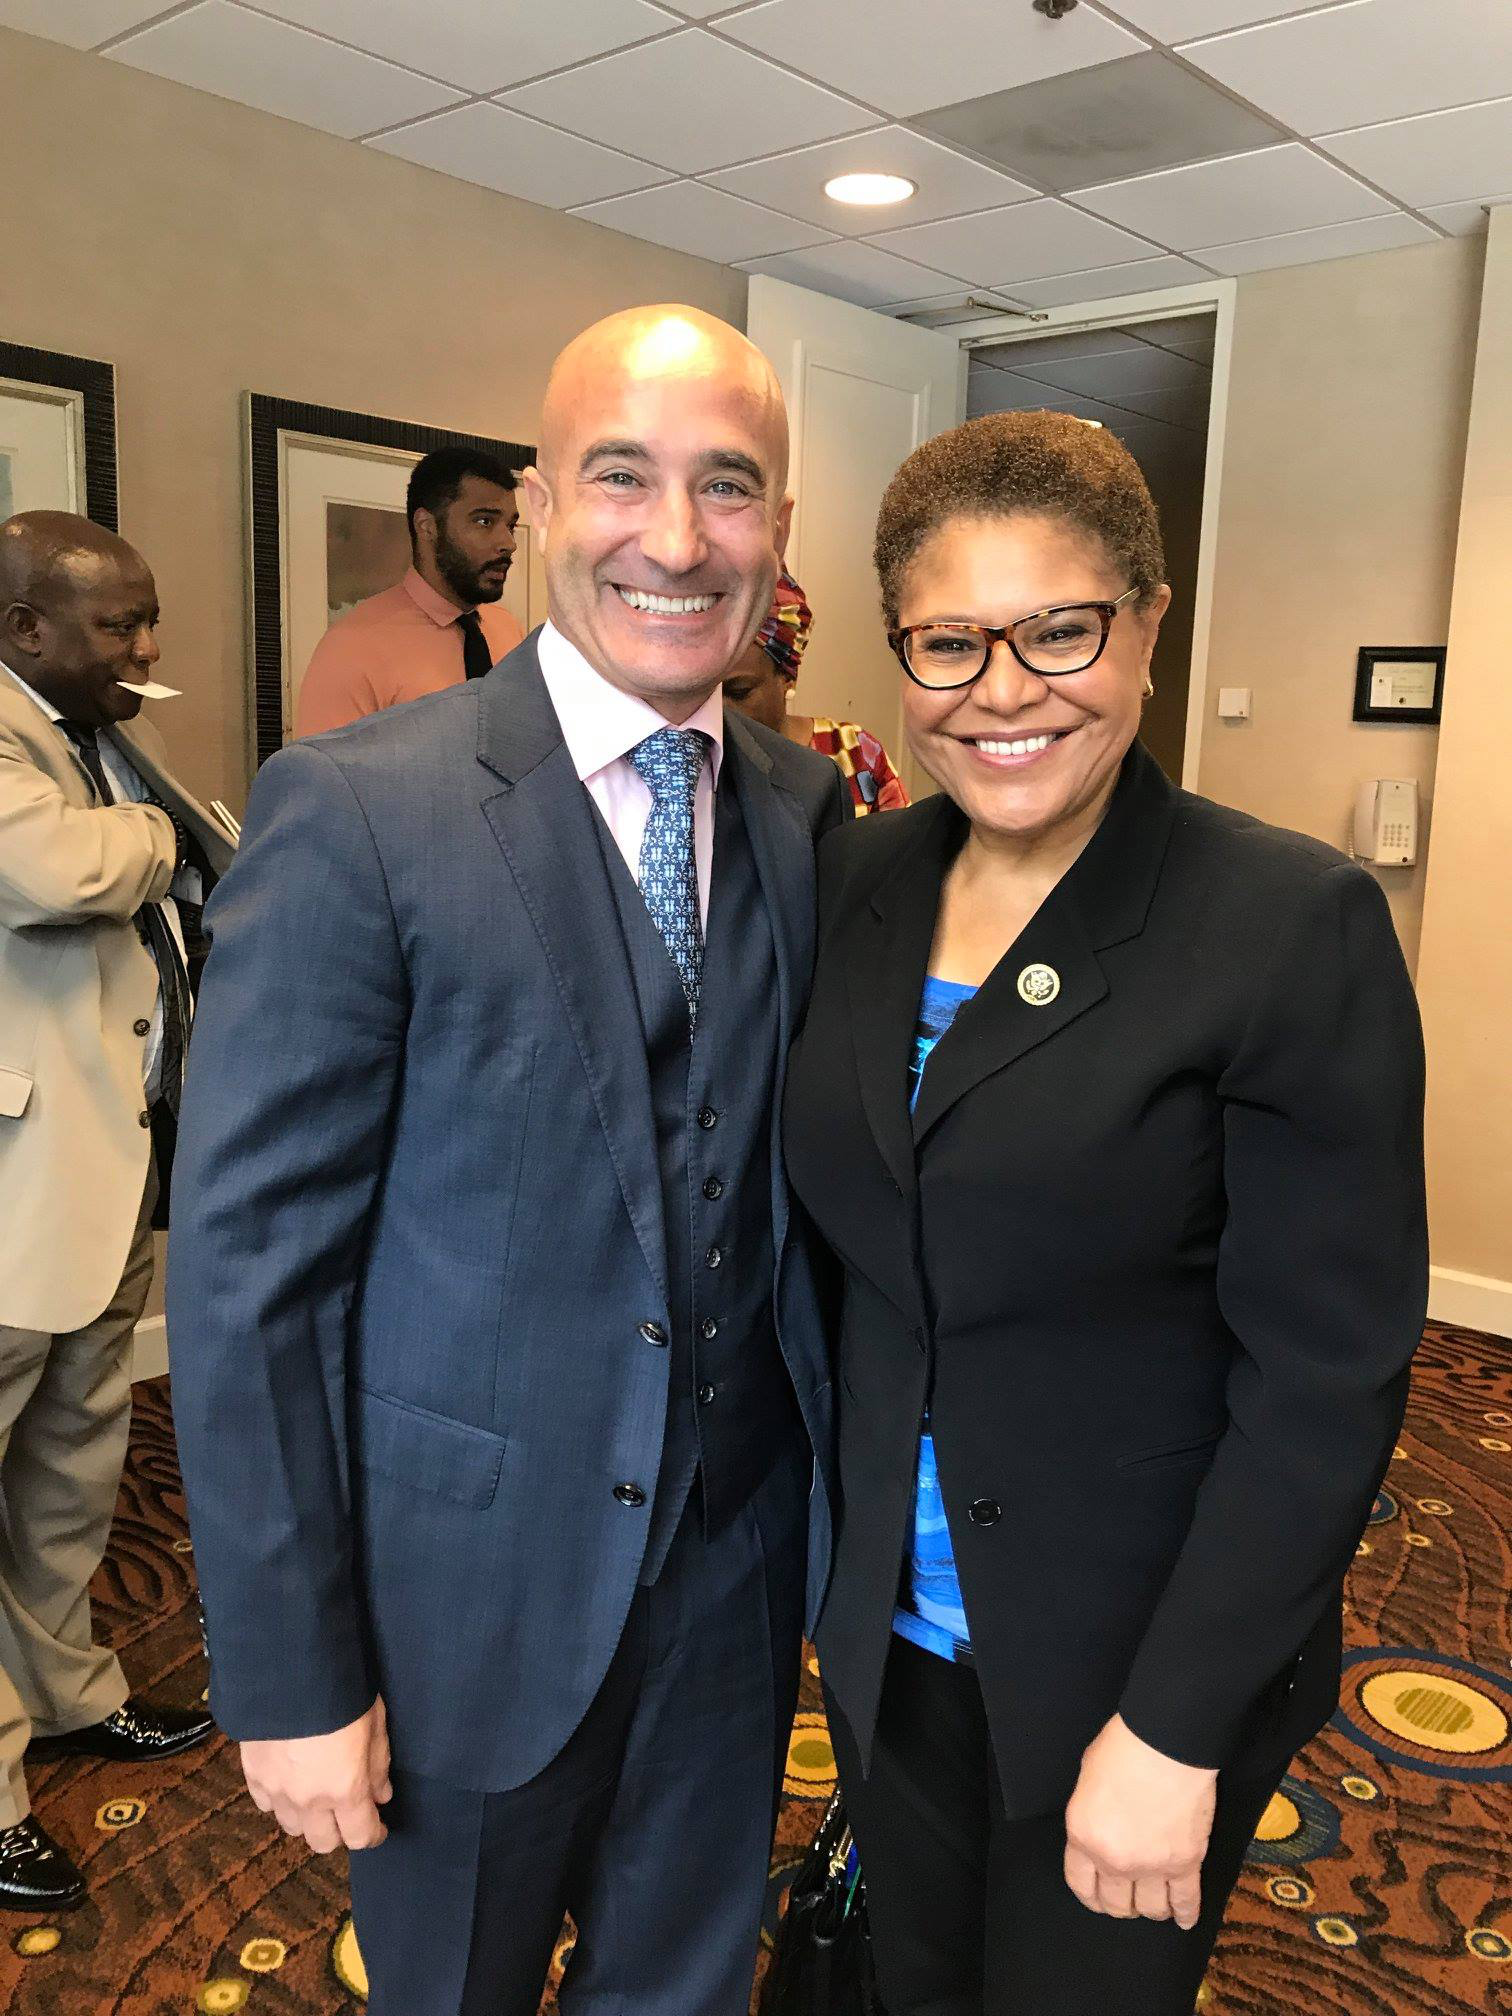 - The Consul with Congresswoman Karen Bass Chair of the Congressional Black Caucus and Chair of the Subcommittee on Africa, Los Angeles 16 December 2019Le Consul avec la Congresswoman Karen Bass Chair du Congressional Black Caucus et Chair du Subcommittee sur l'Afrique, Los Angeles 16 Décembre 2018